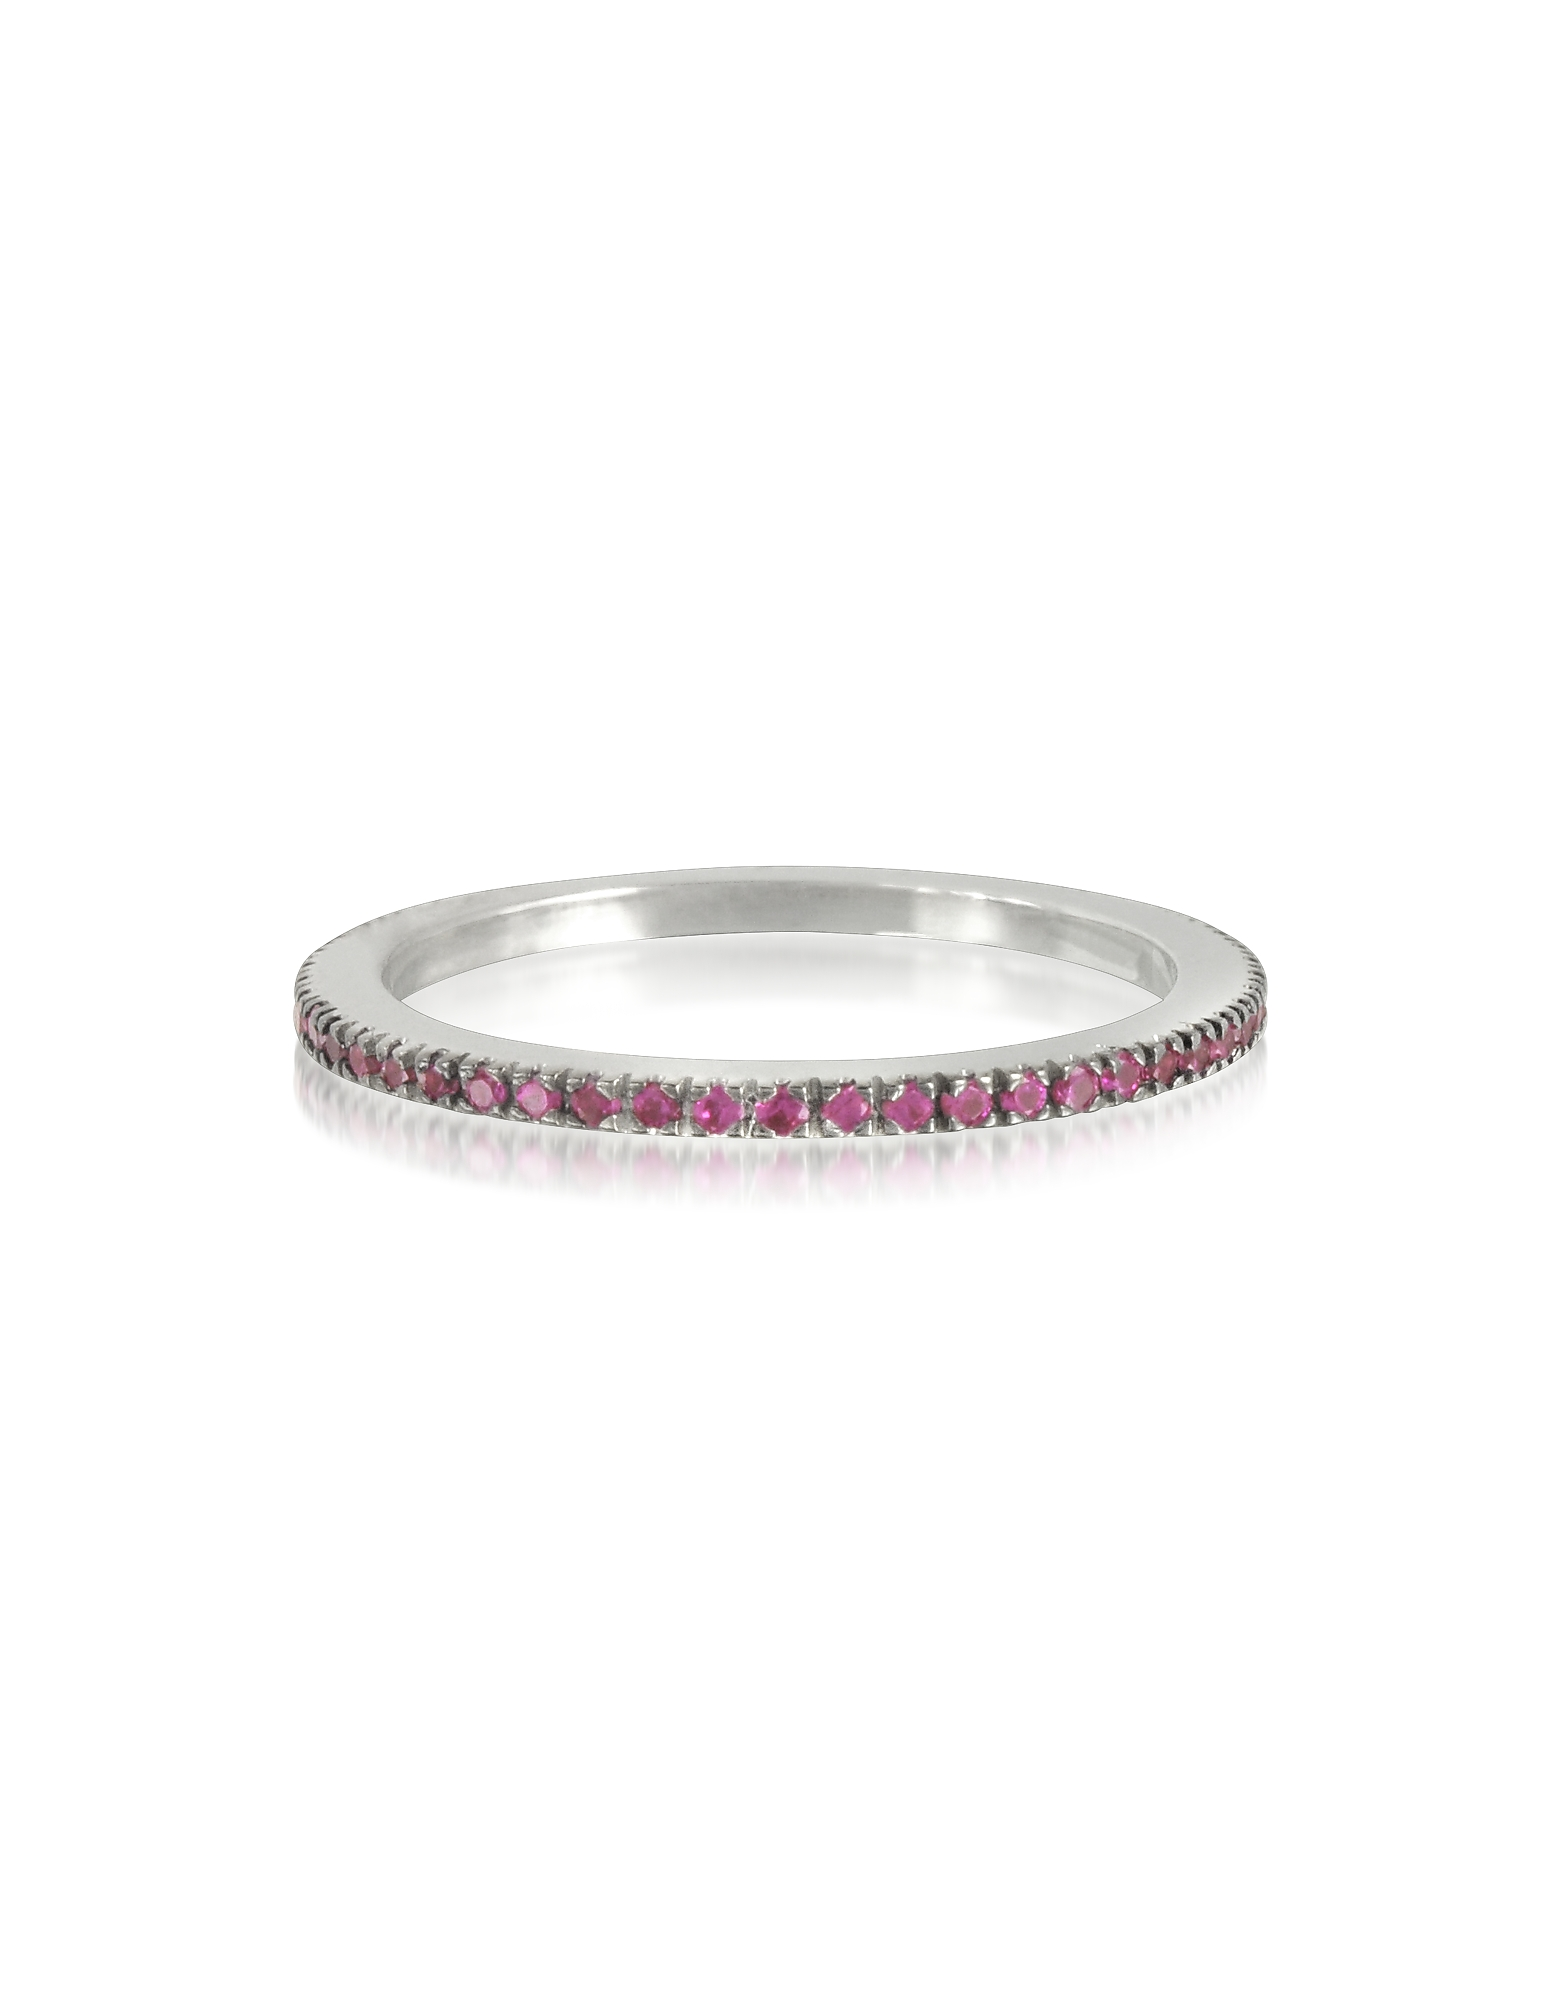 Forzieri Rings, Natural Pink Sapphire Eternity Band Ring